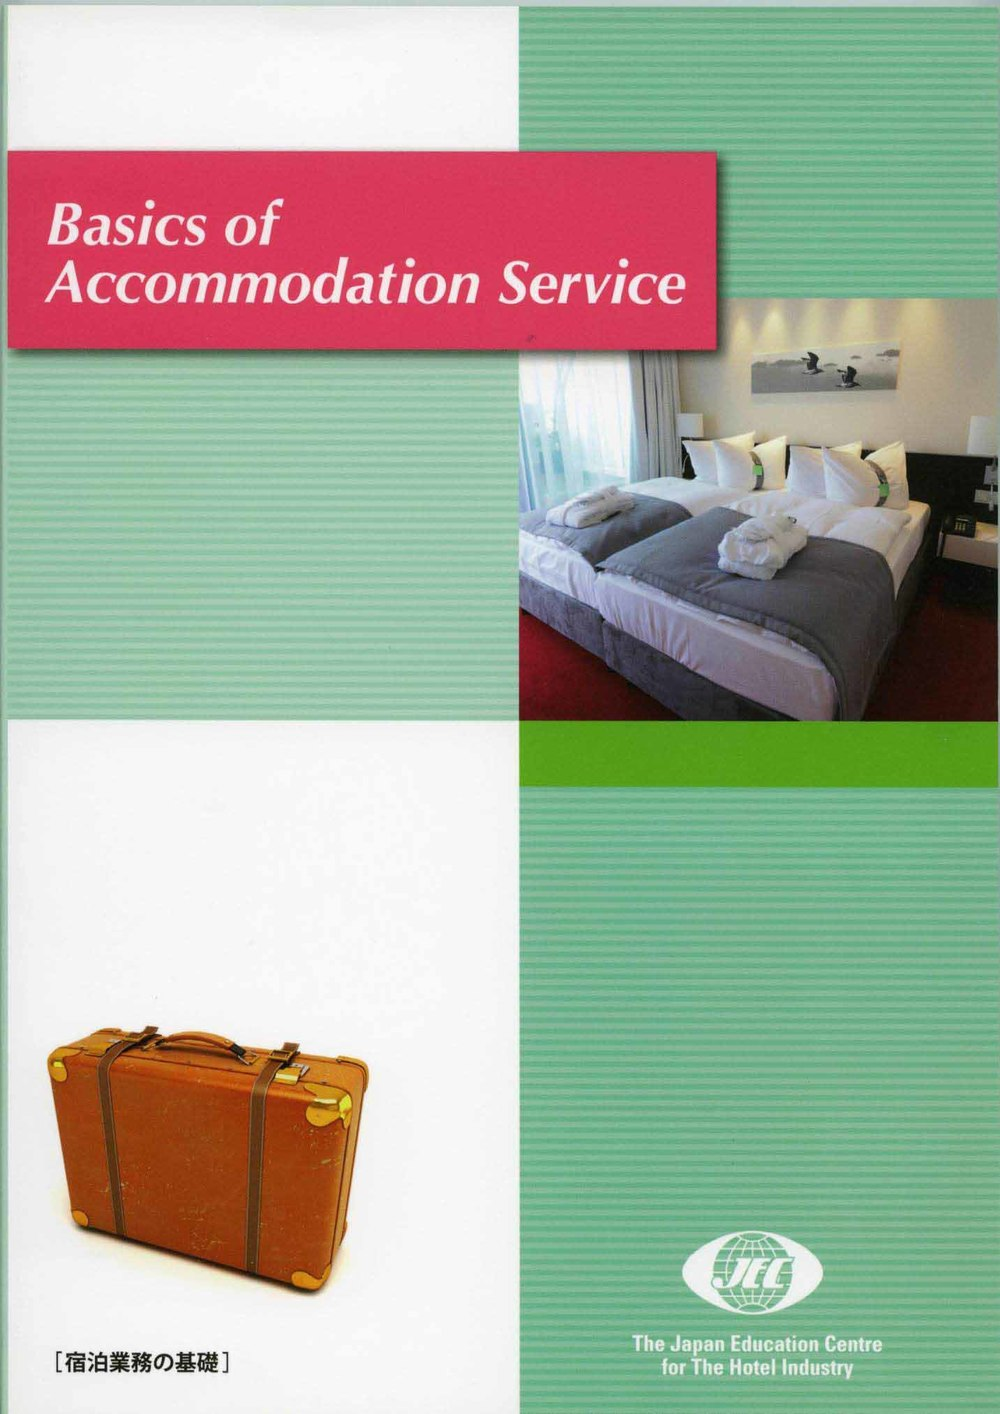 Basics of Accommodation Service 宿泊業務の基礎